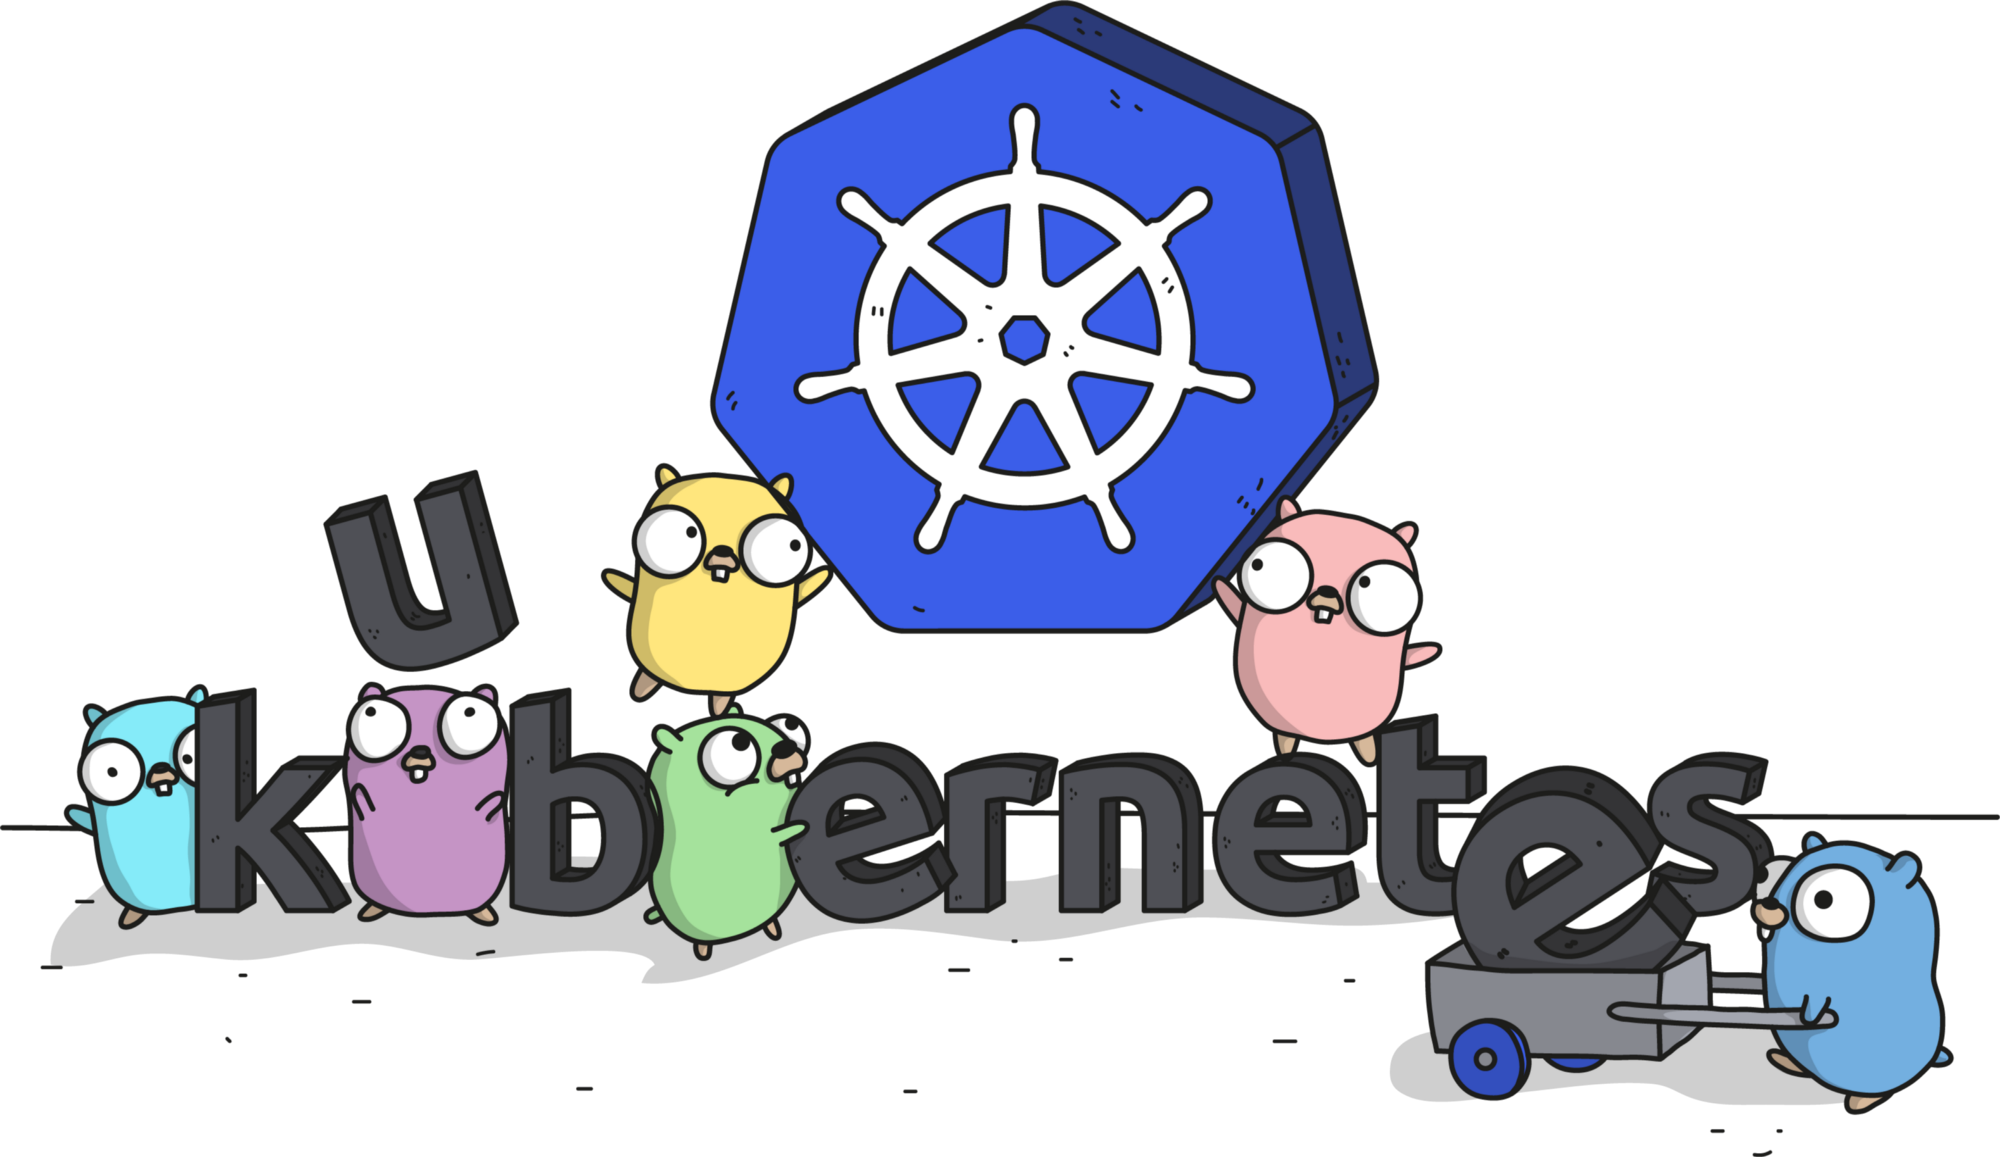 How a Kubernetes bug won't let you expose a service over TCP and UDP on a same port